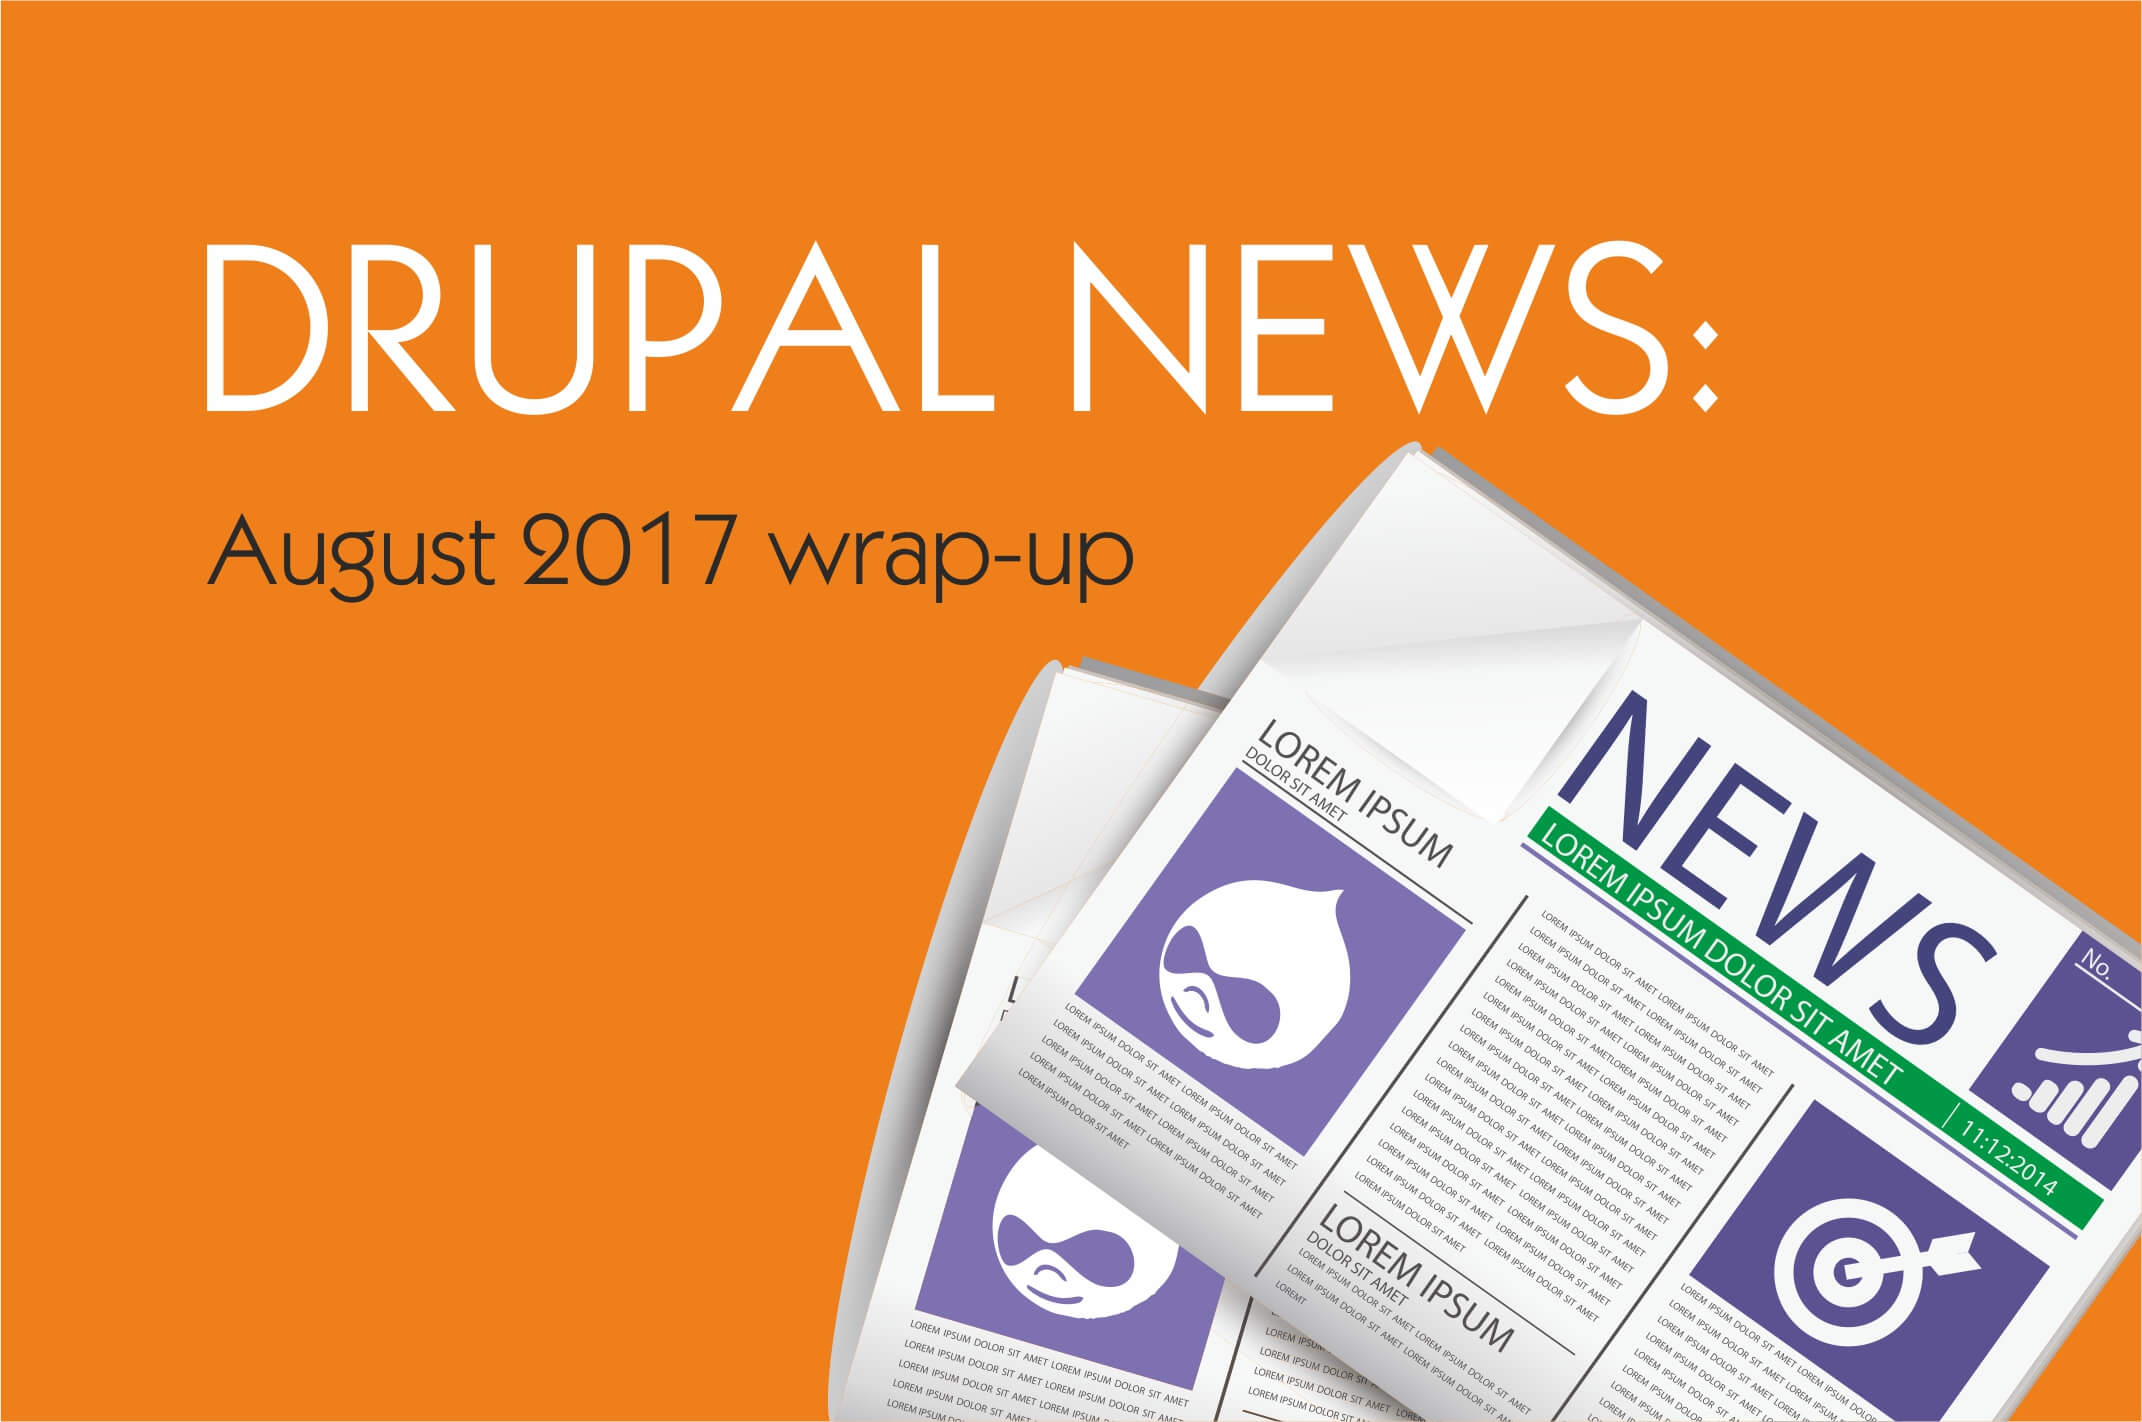 The productive August: Drupal news wrap-up for 08/2017